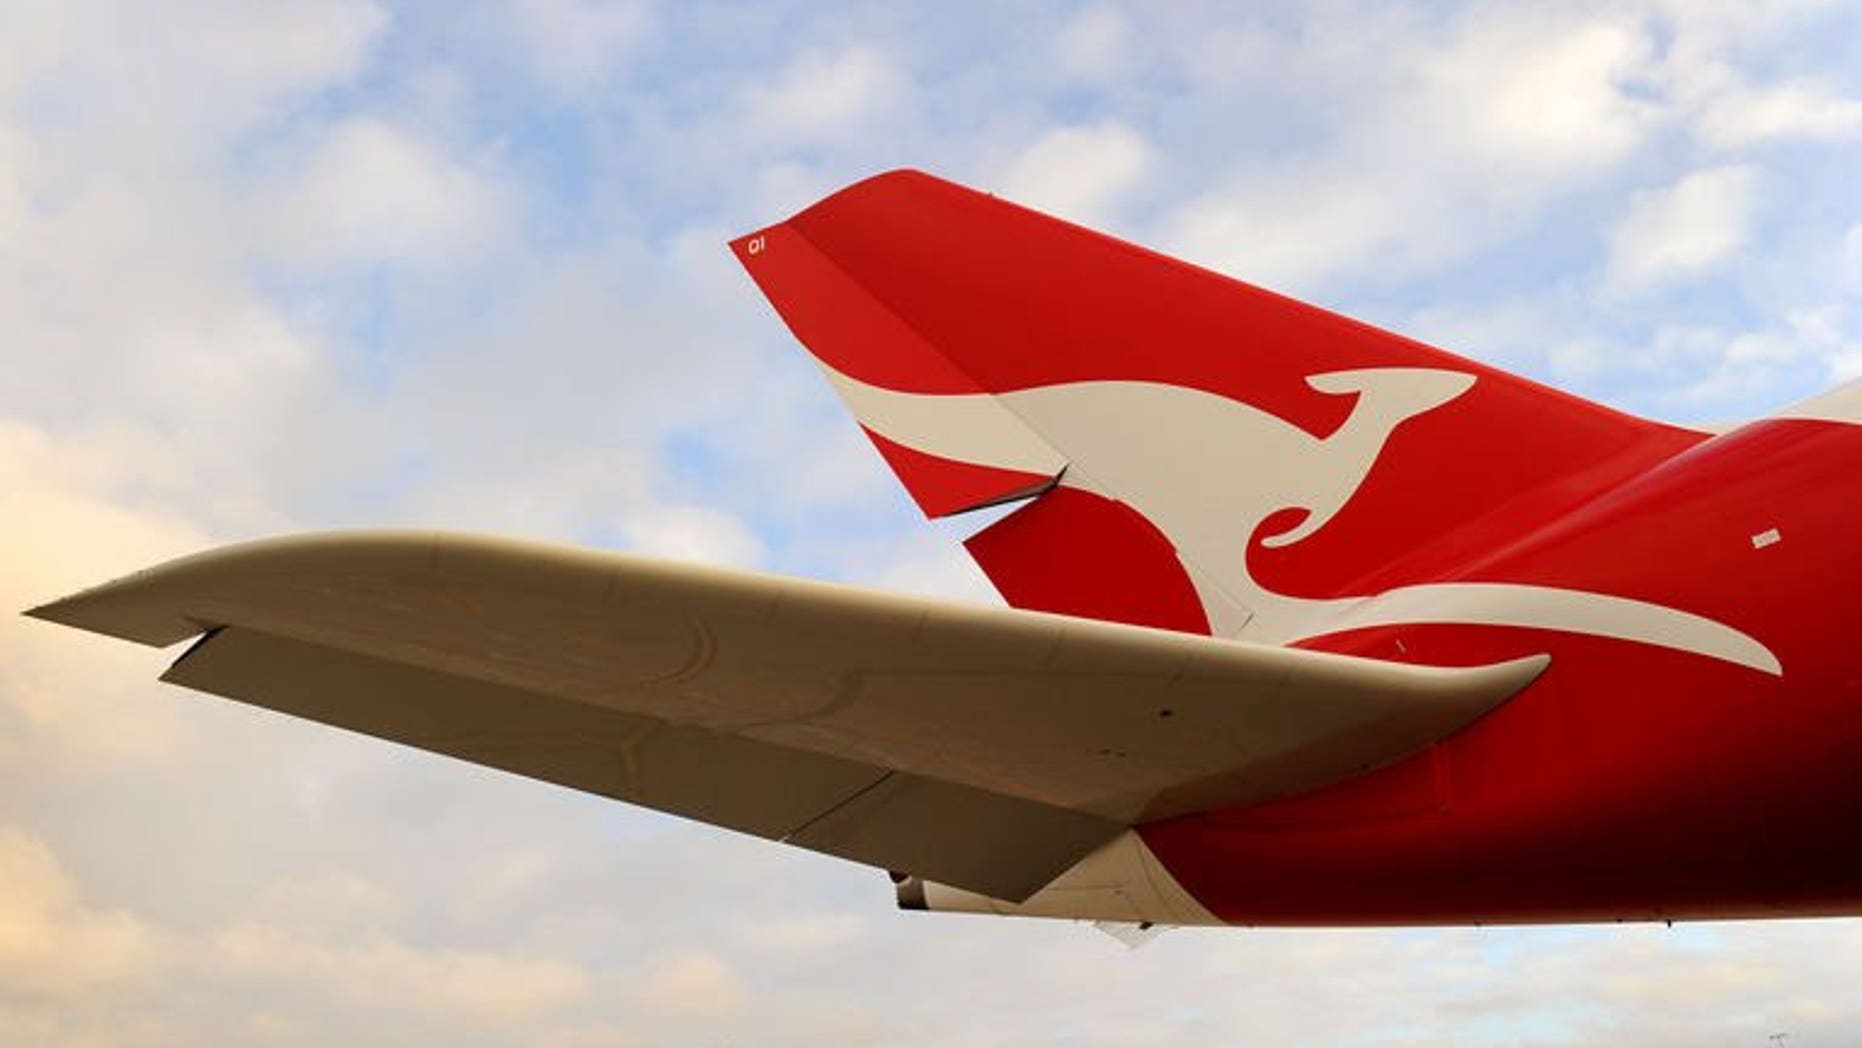 A Qantas A380 Airbus sits on the tarmac at Melbourne's Tullamarine Airport on August 11, 2011. Australian police said Friday they had restrained a man as he tried to break into the cockpit of a commercial Qantas flight en route to the Philippines.